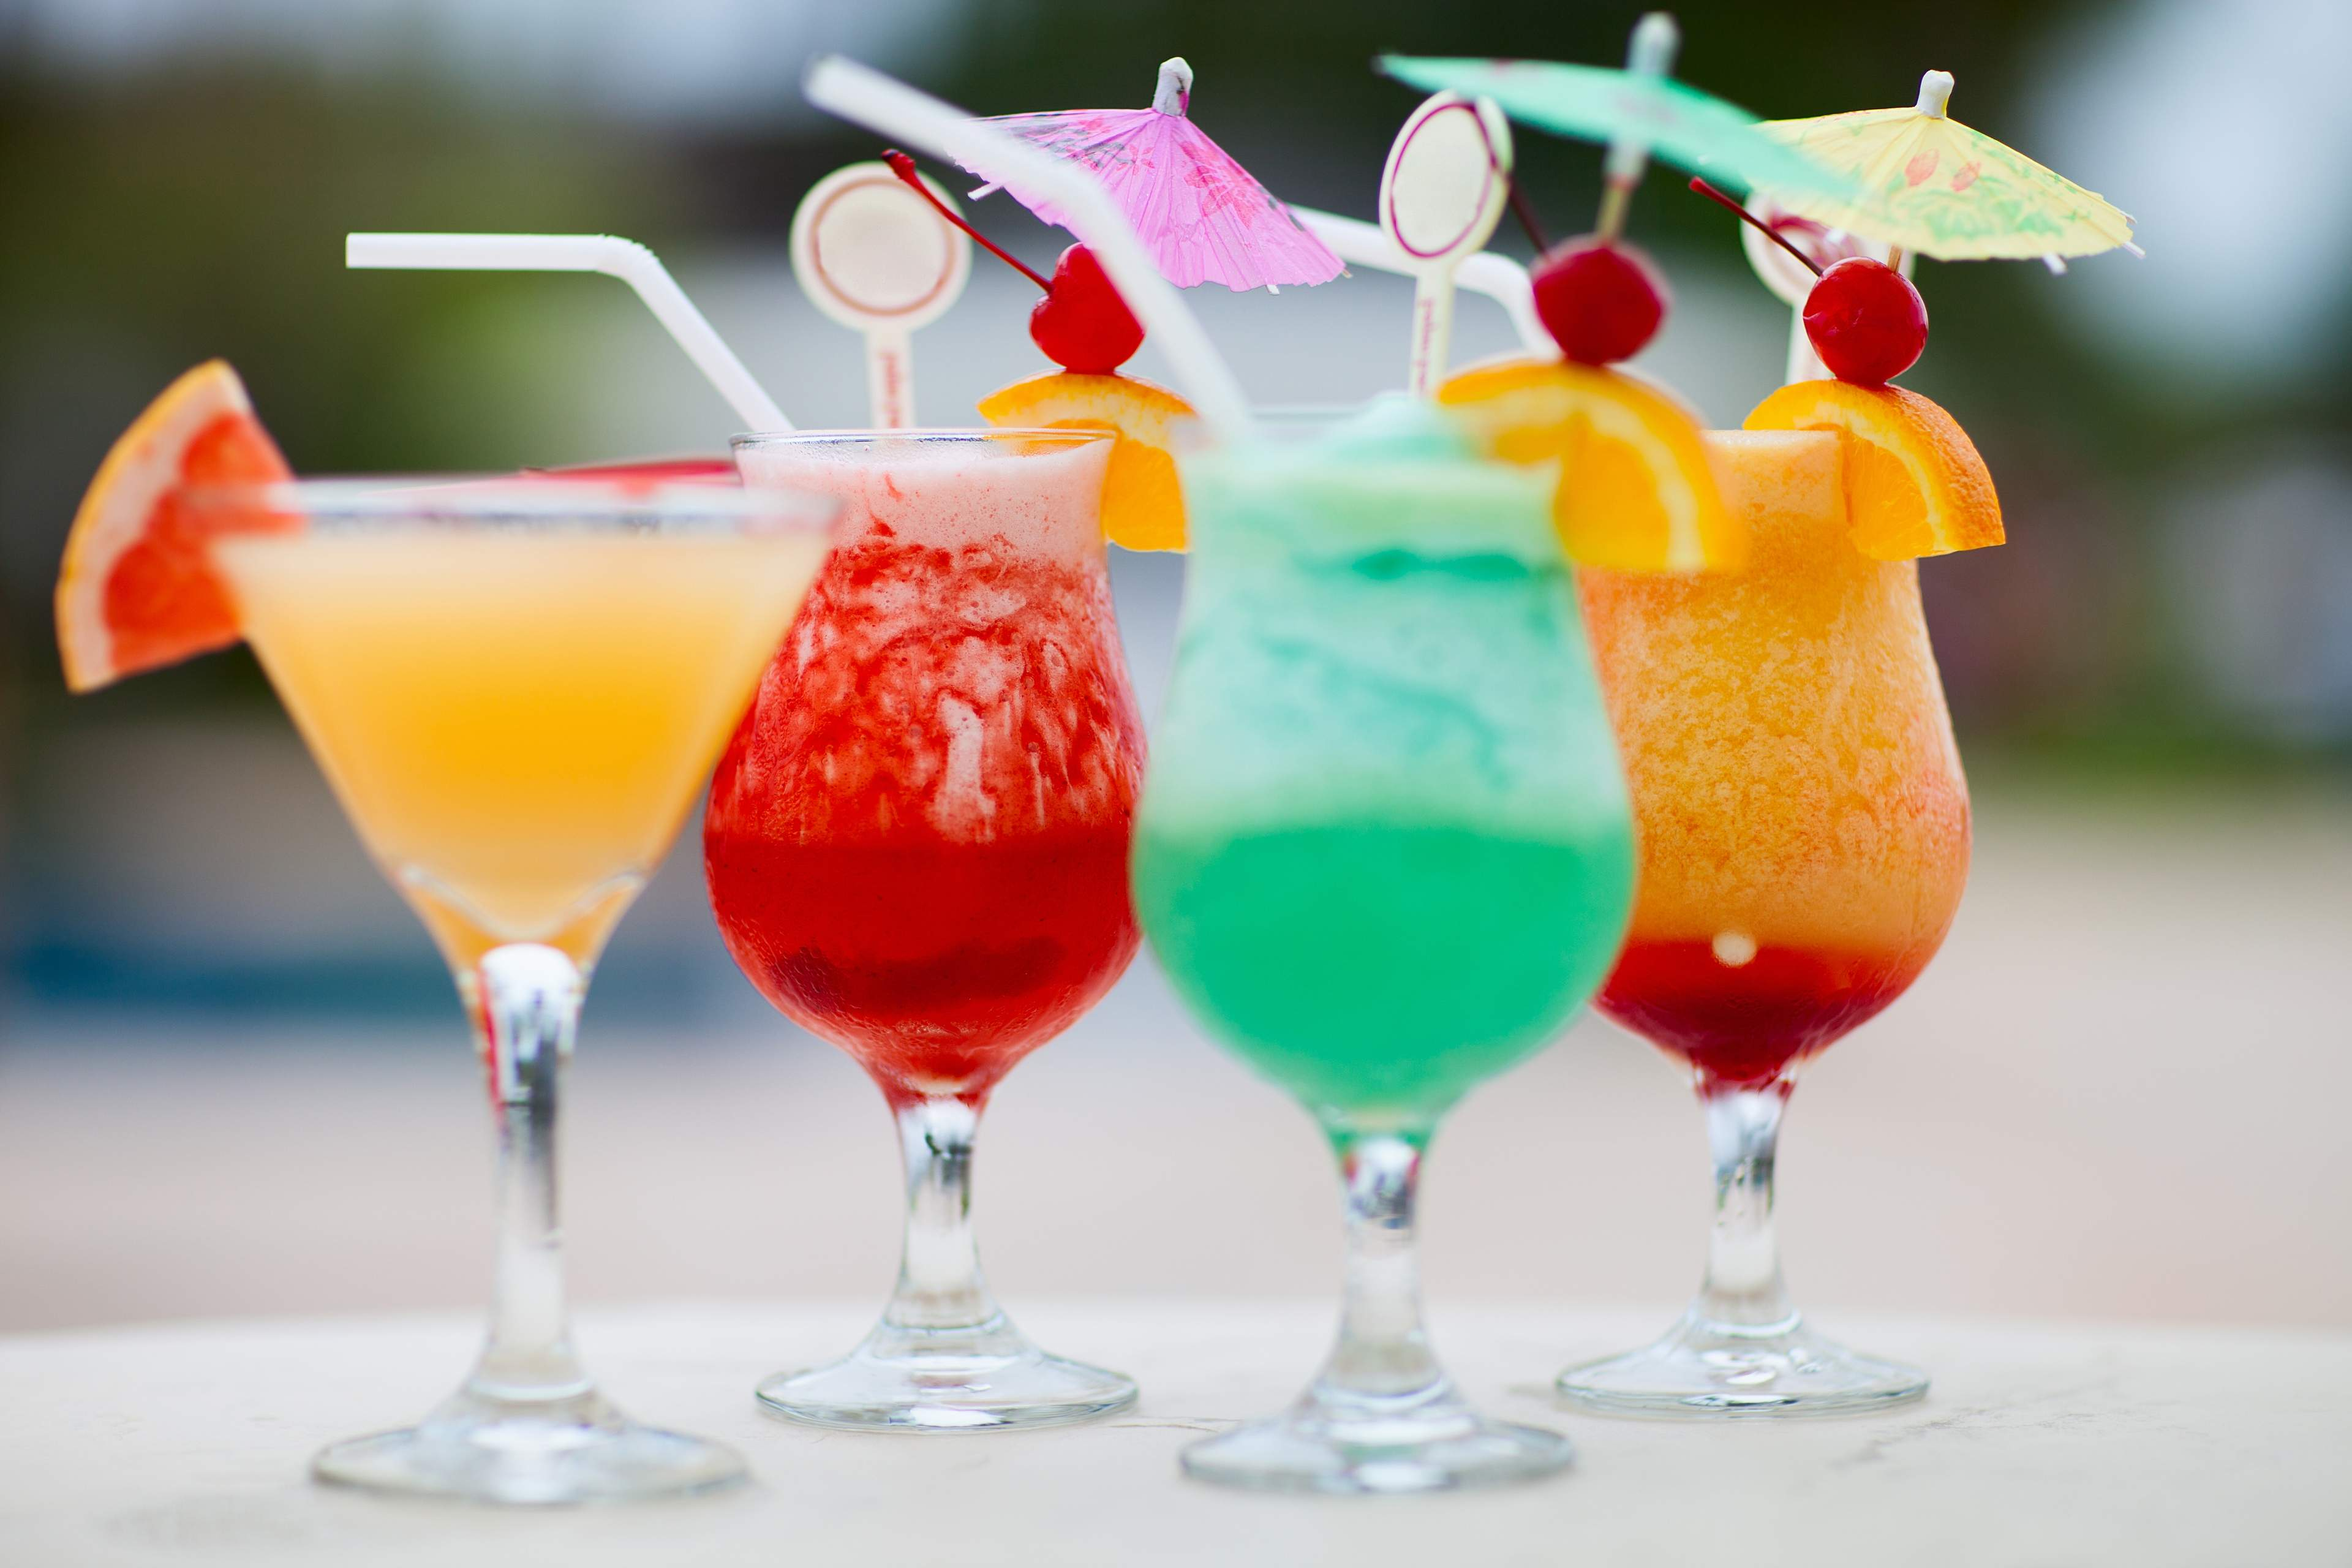 Drinks Wallpapers High Quality